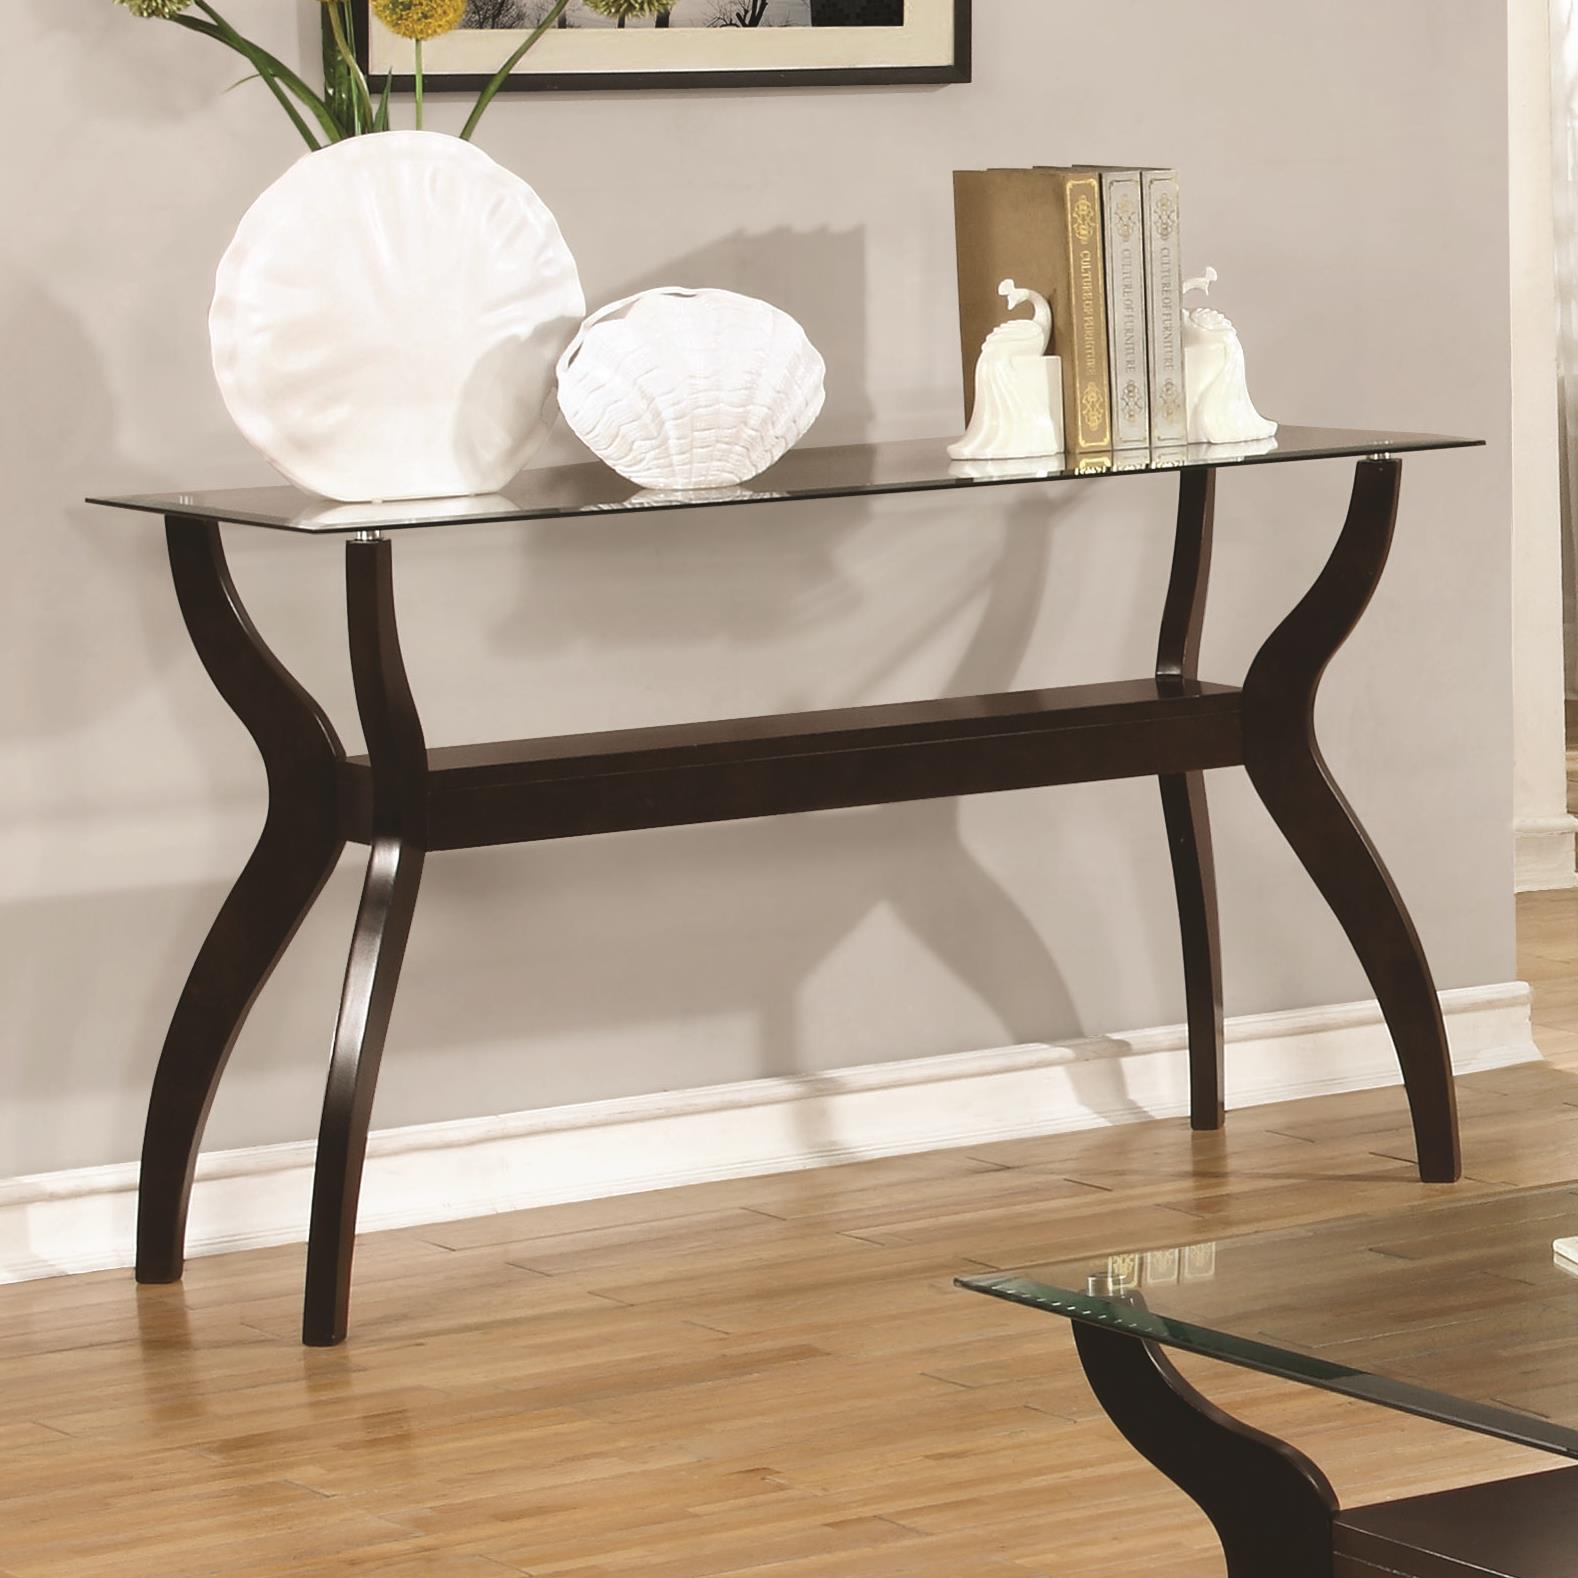 704629 mid century modern sofa table with glass top